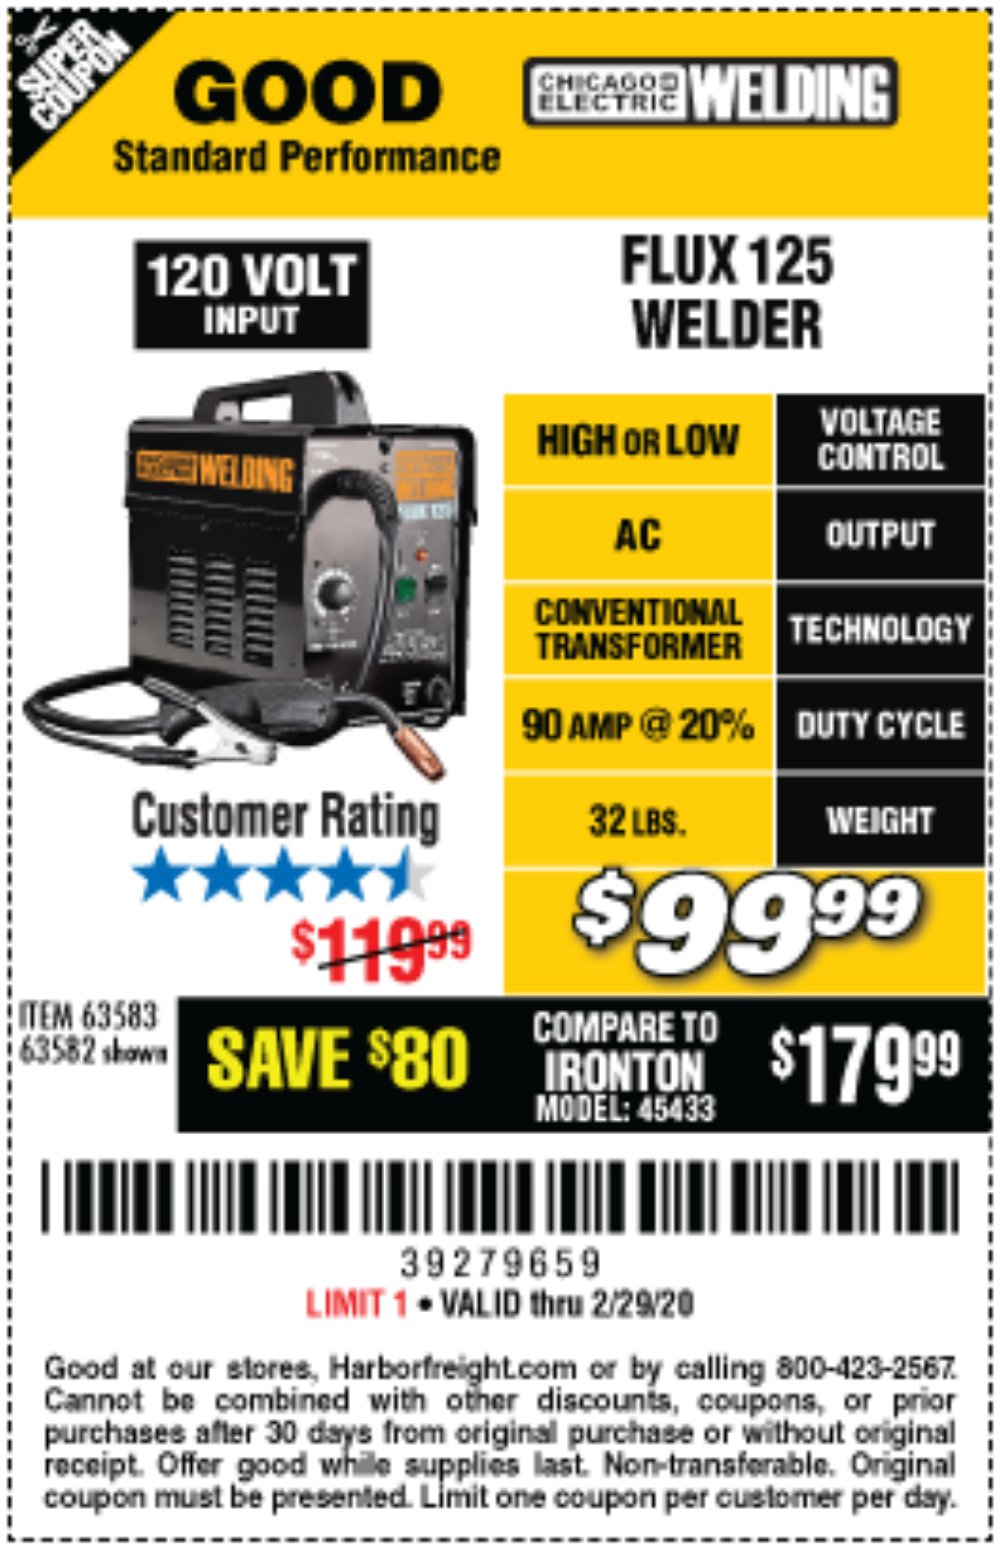 Harbor Freight Coupon, HF Coupons - 125 Amp Flux-core Welder